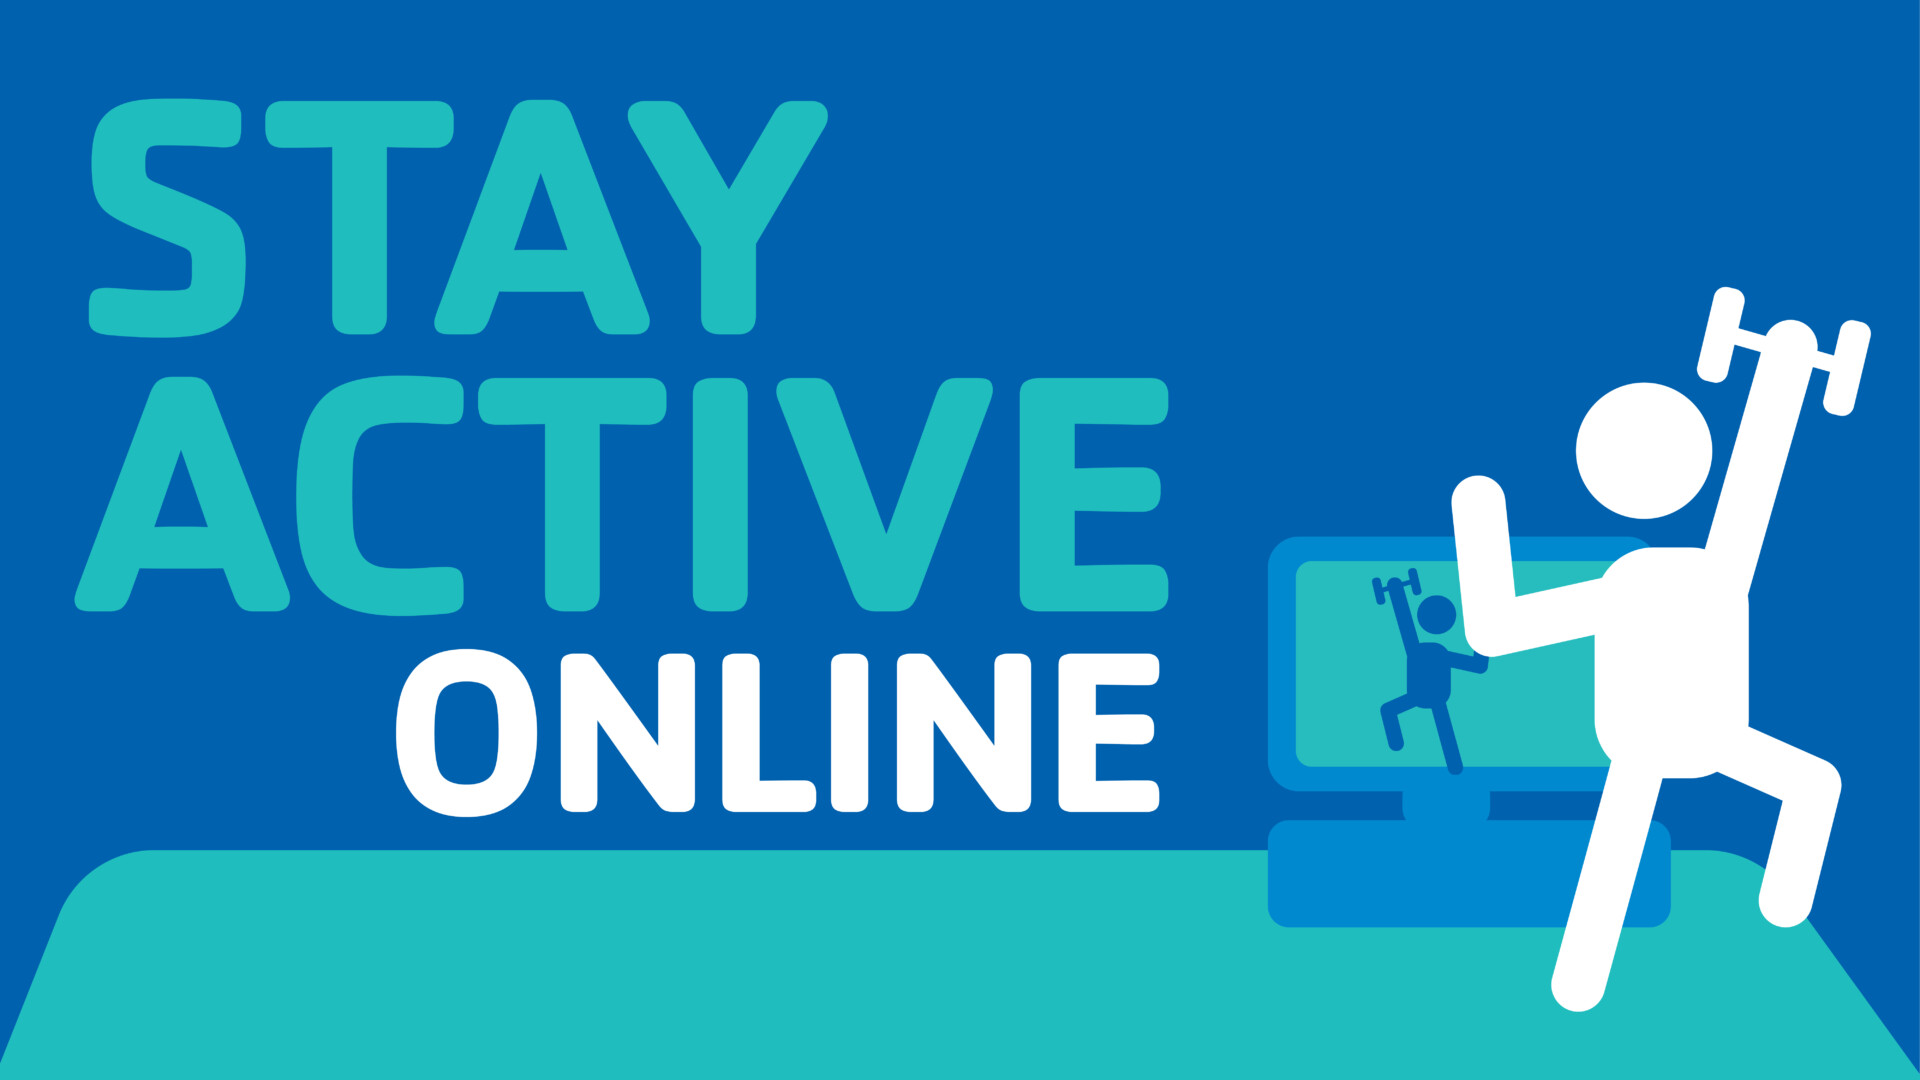 Stay active online